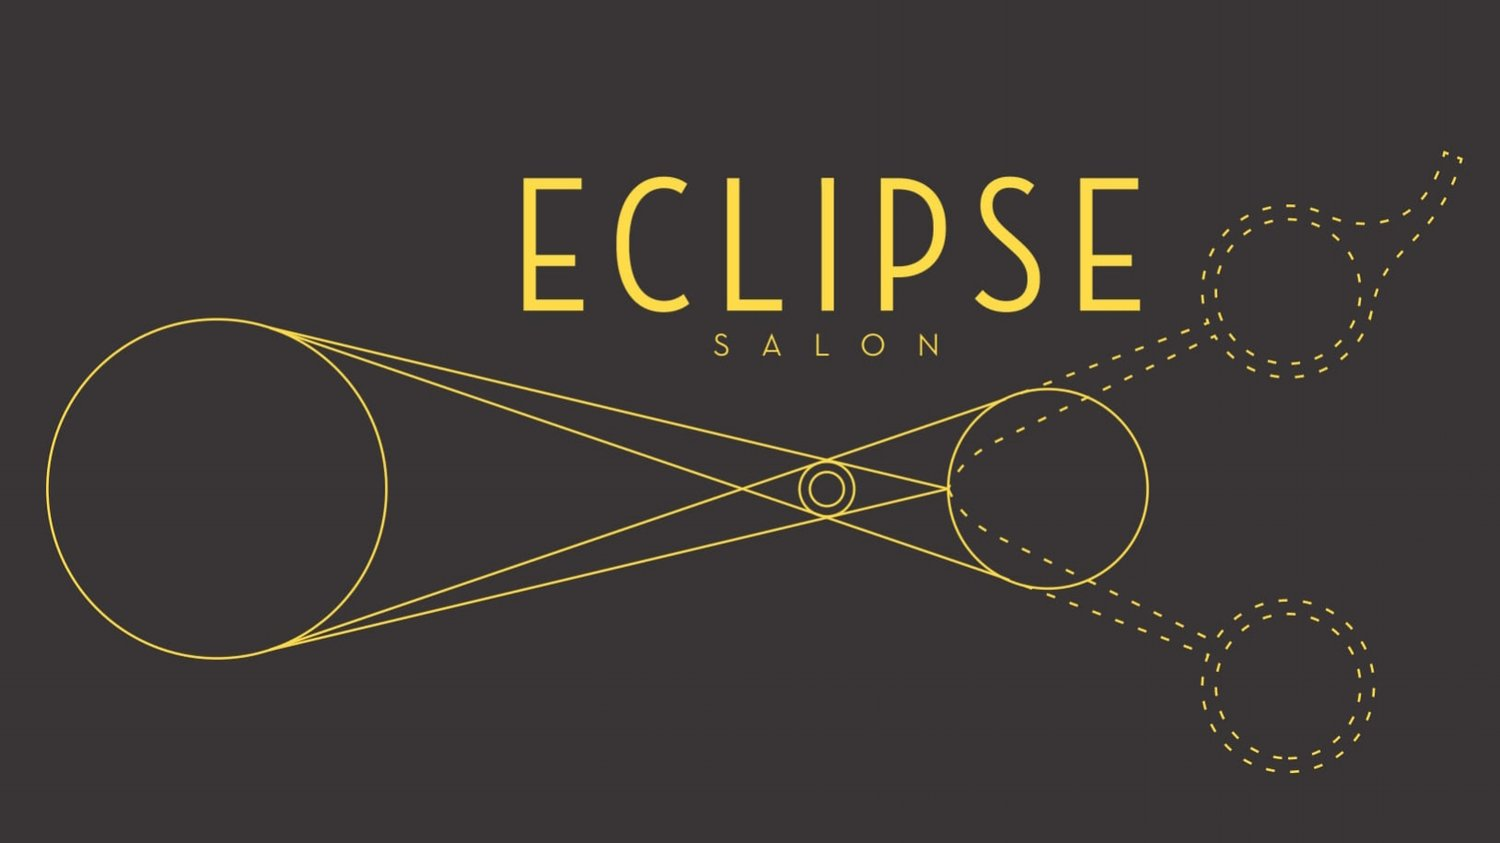 Eclipse Salon